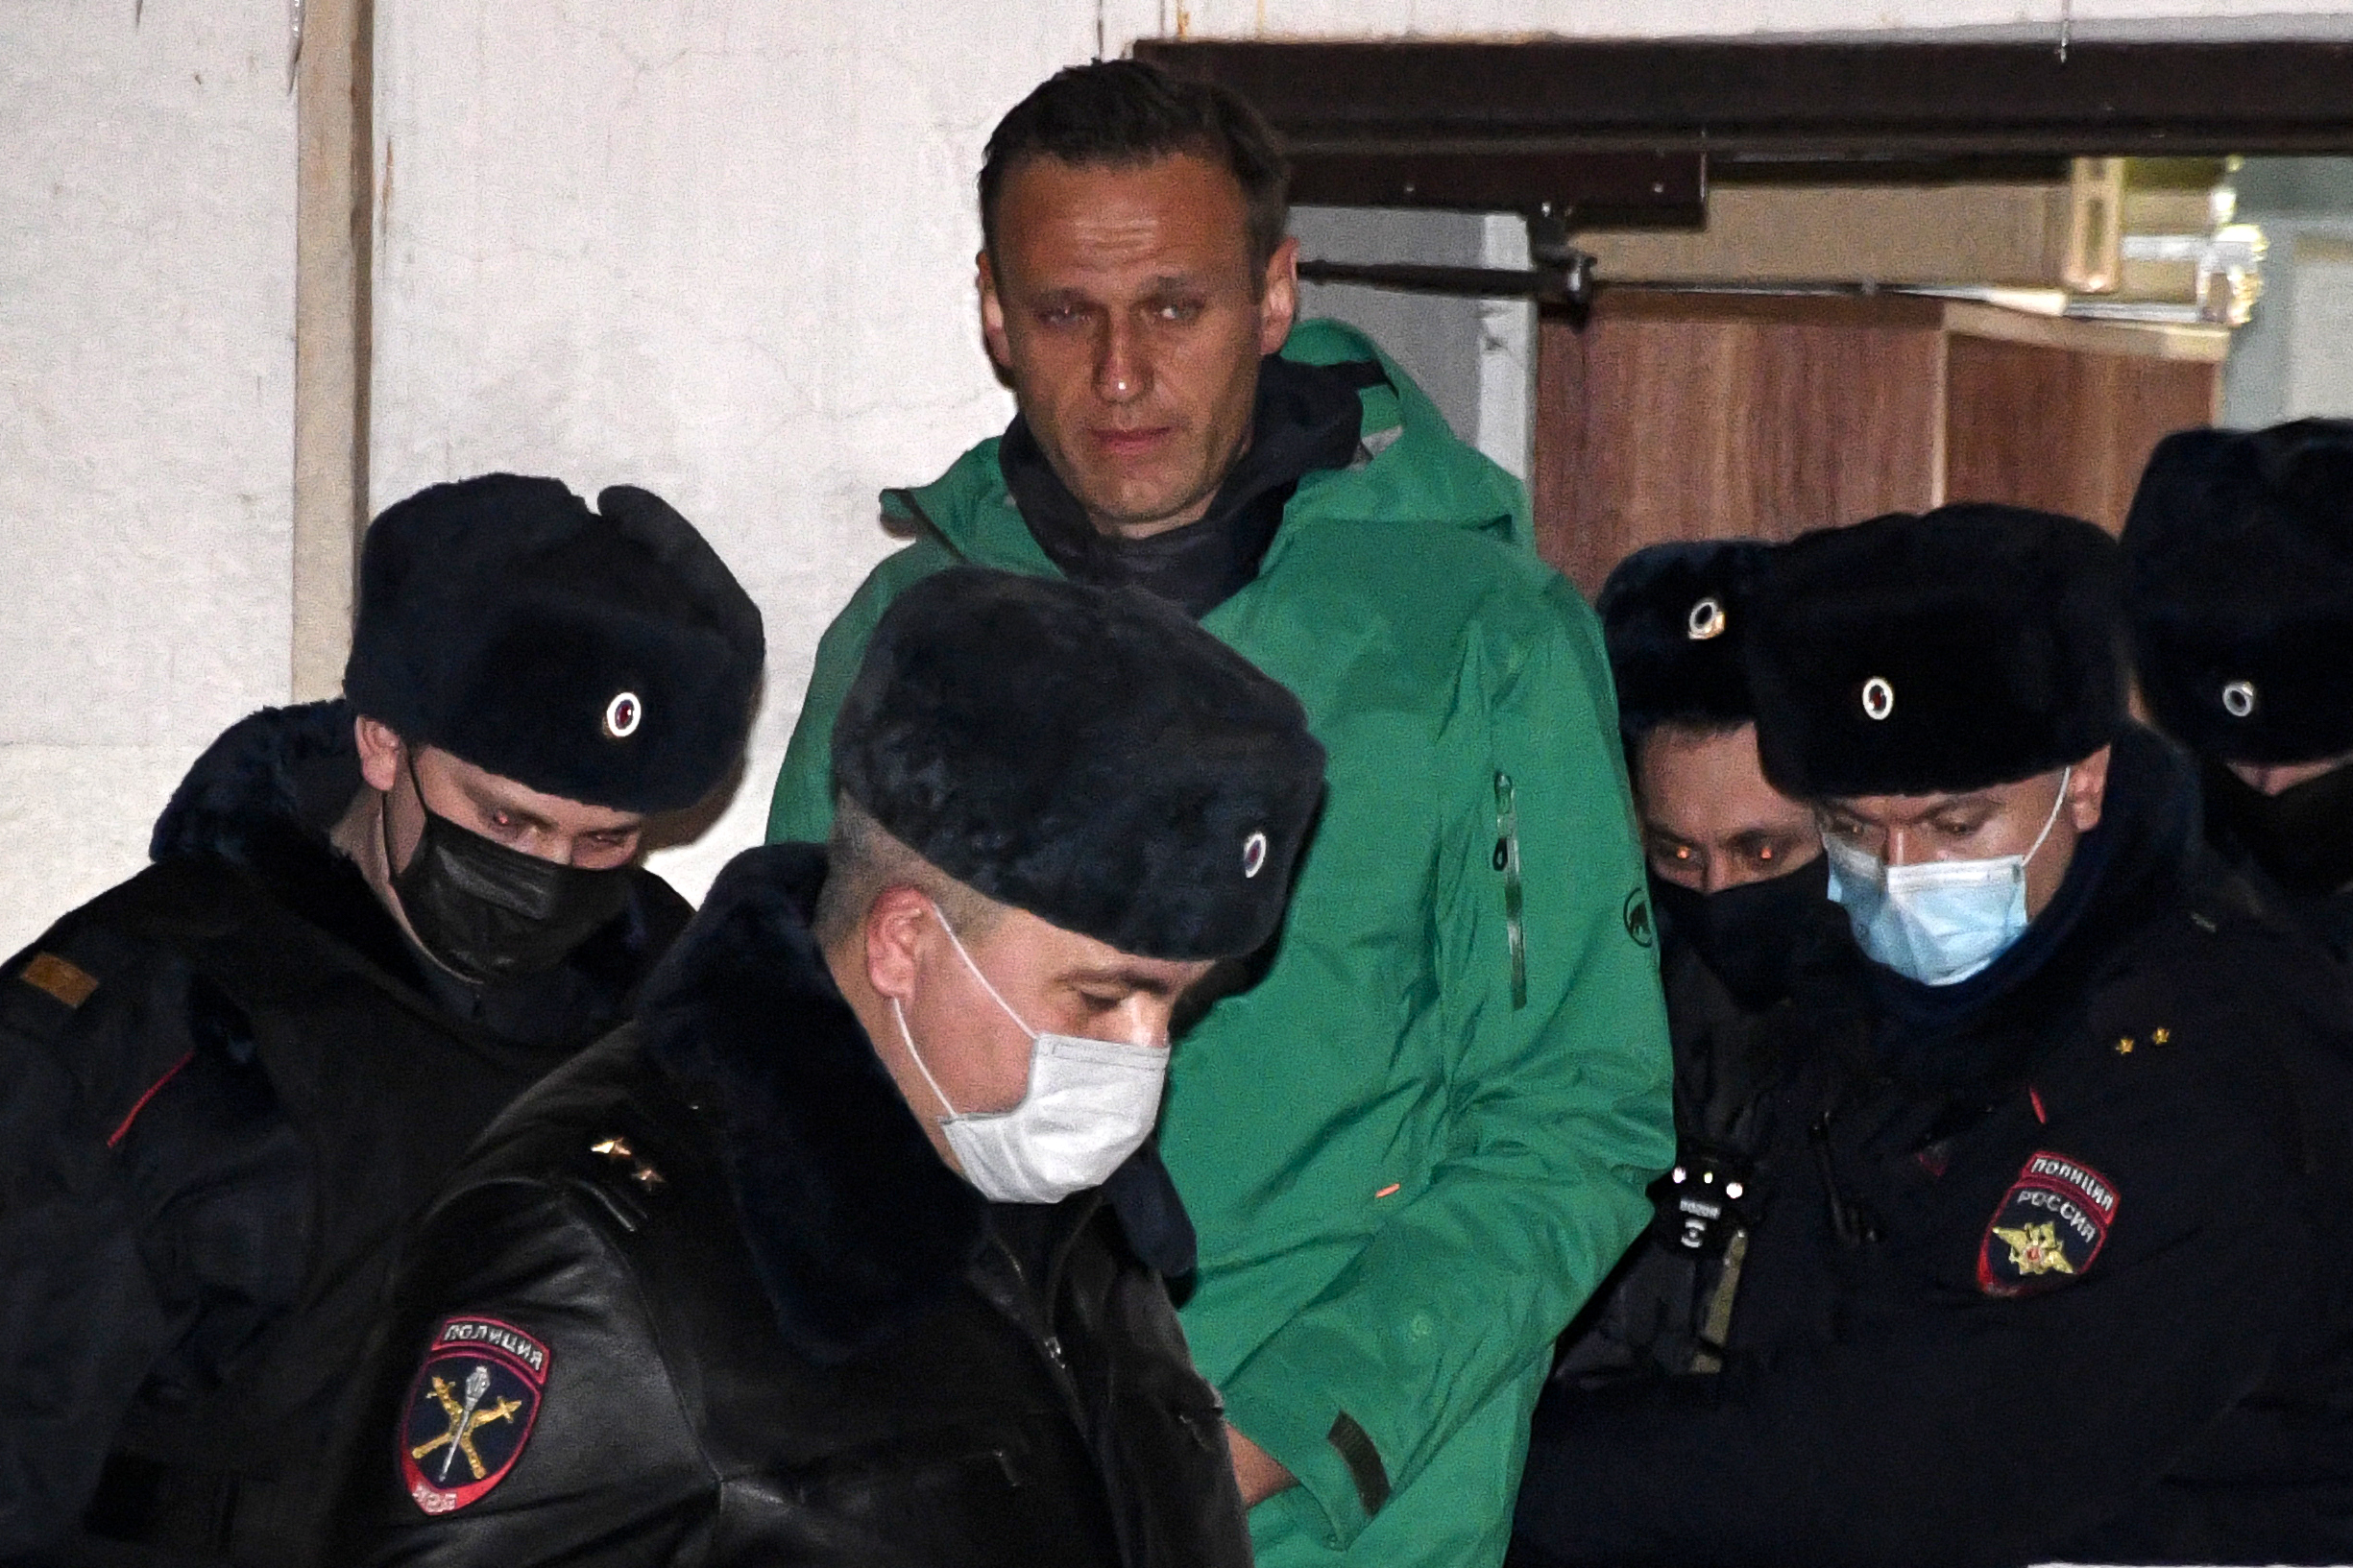 Russian opposition leader Alexei Navalny is escorted out of a police station in Khimki, outside Moscow, following Monday's court ruling that ordered him jailed for 30 days. (Alexander Nemenov/AFP via Getty Images)